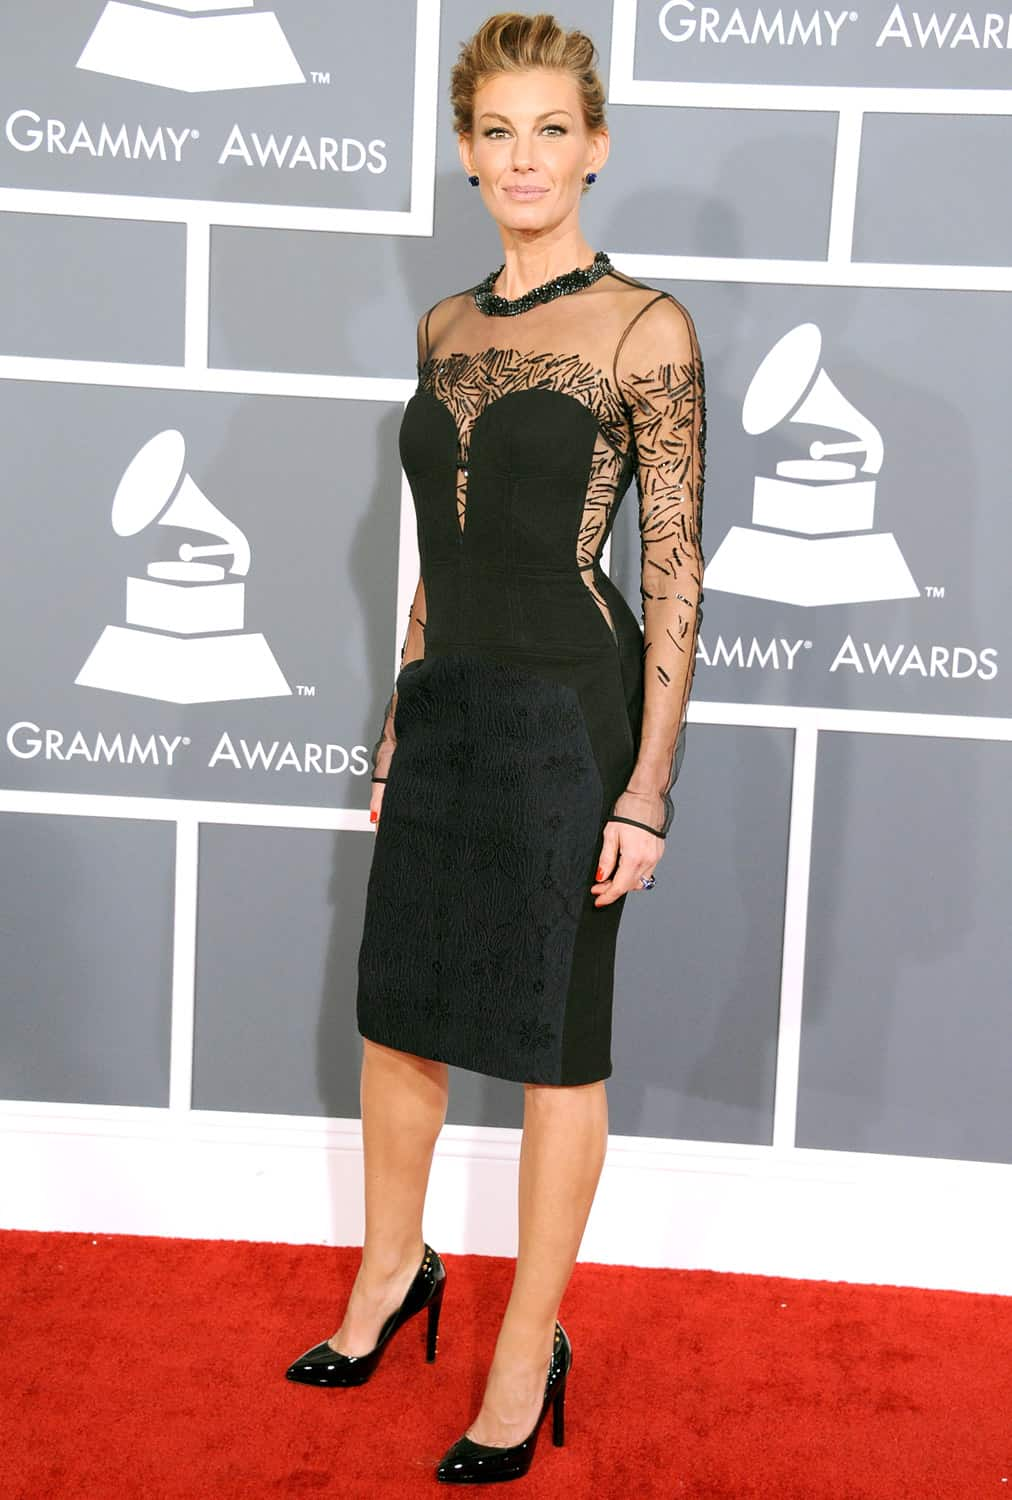 faith hill grammy 2013 red carpet the fashion tag blog. Black Bedroom Furniture Sets. Home Design Ideas